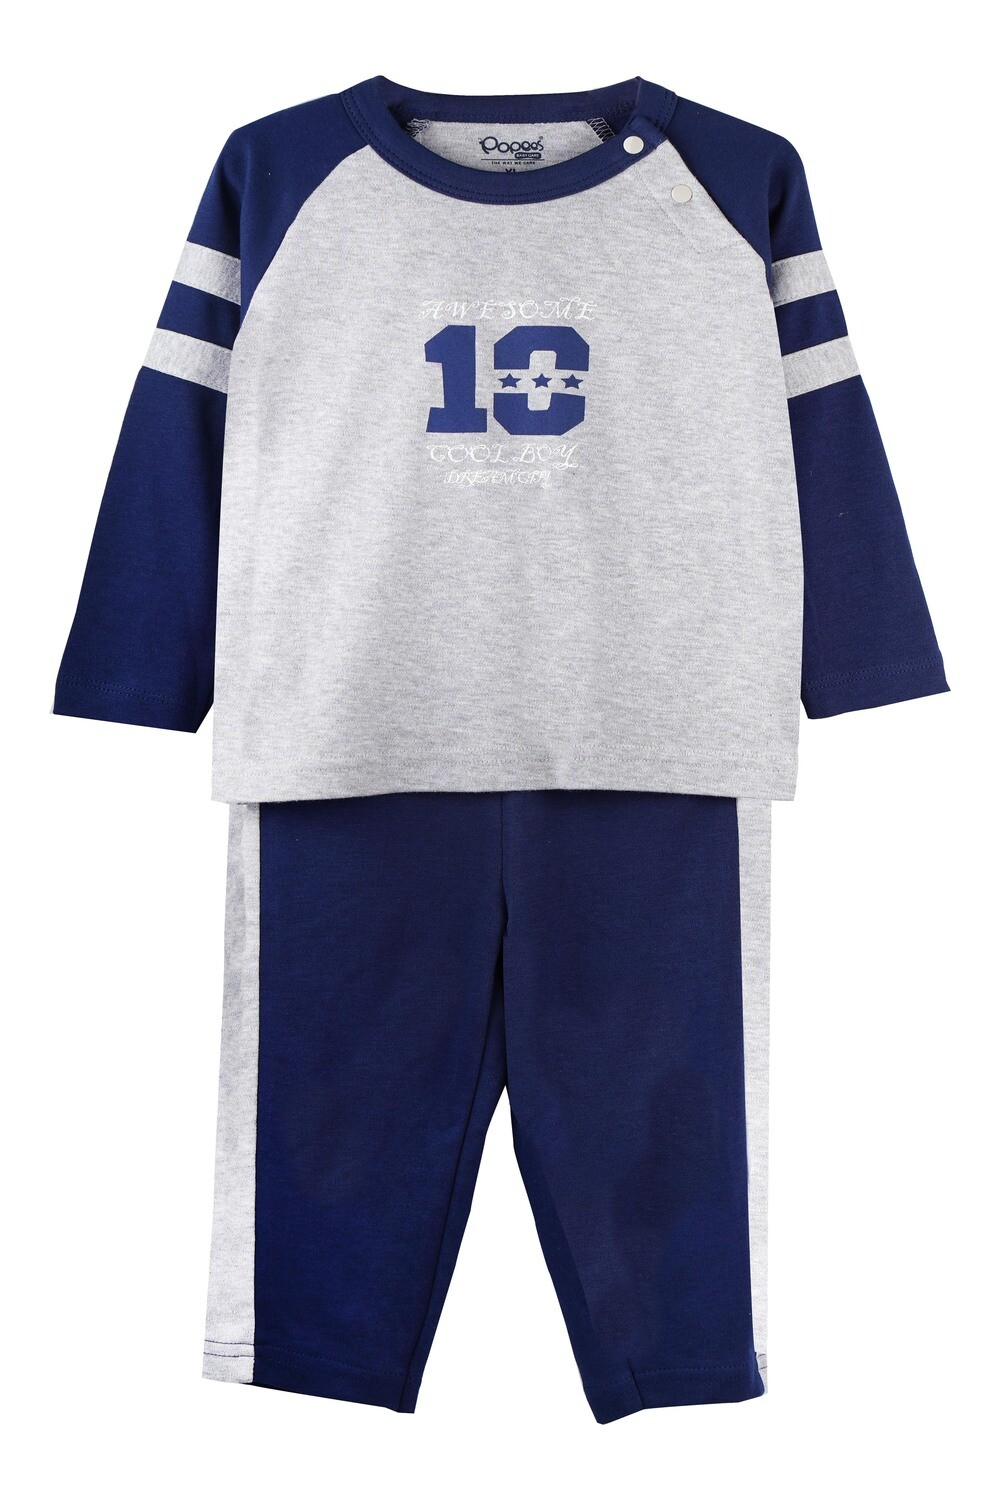 ELIGE MELANGE/NAVY Full Sleeve Top and Pant for Baby Boys